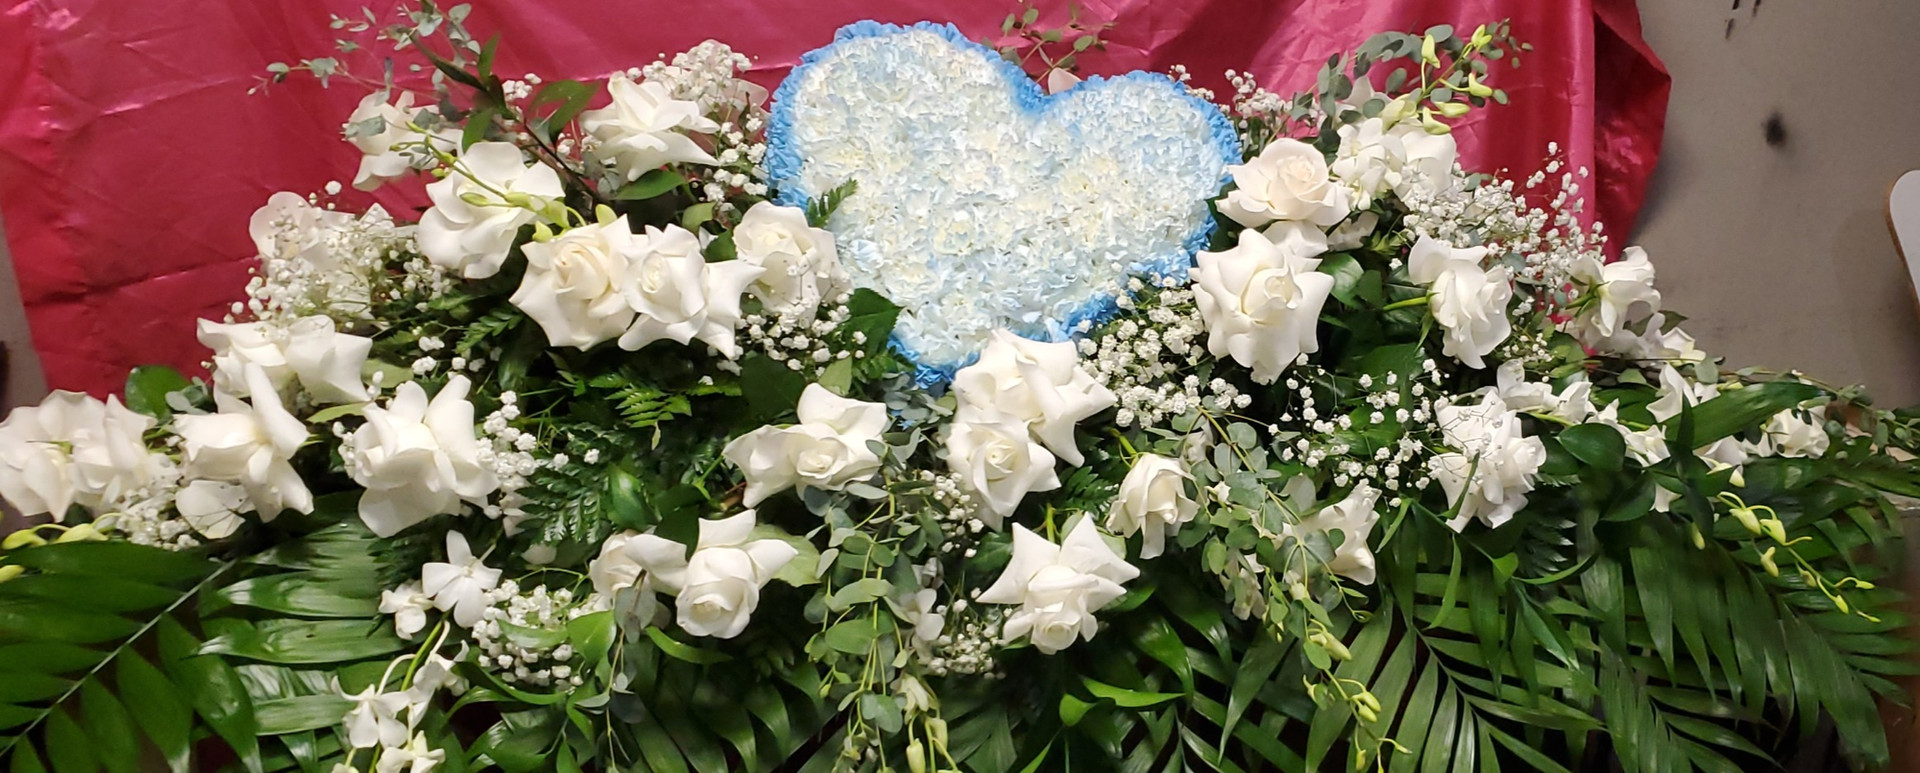 CLOSED CASKET SPARY WITH HEART